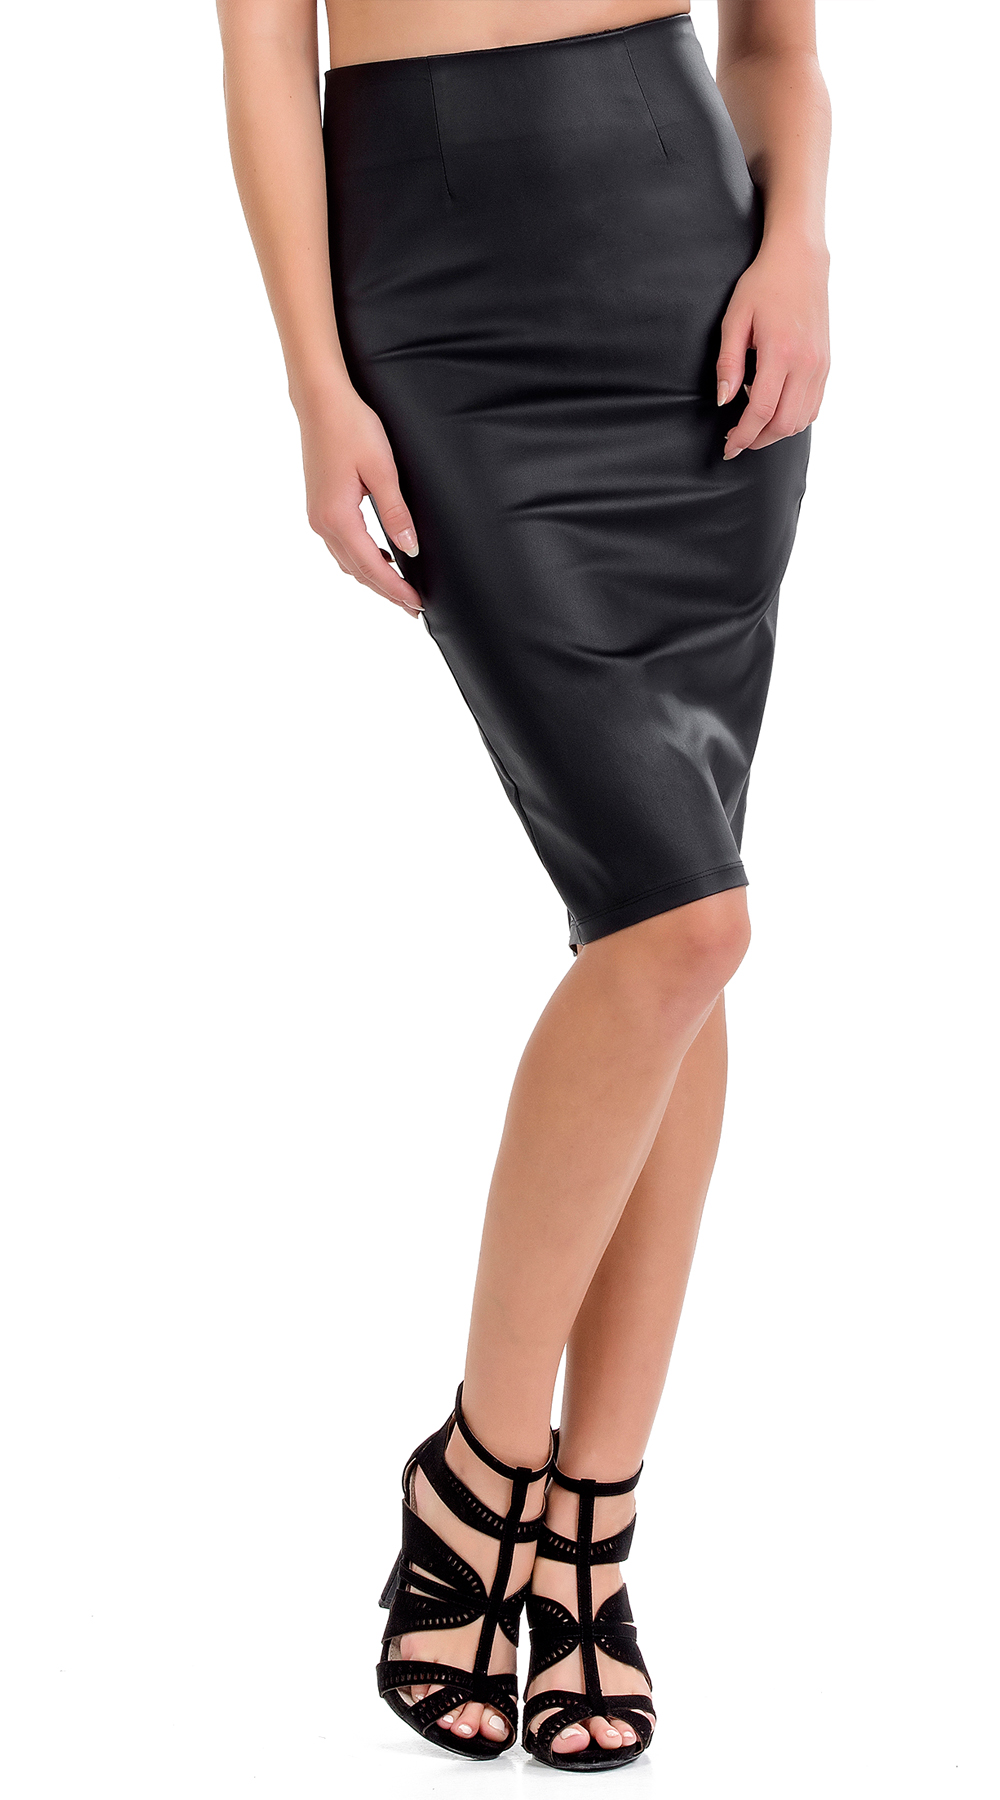 Μίντι leatherlook φούστα Online - ONLINE - FA17ON-79511 top trends office look